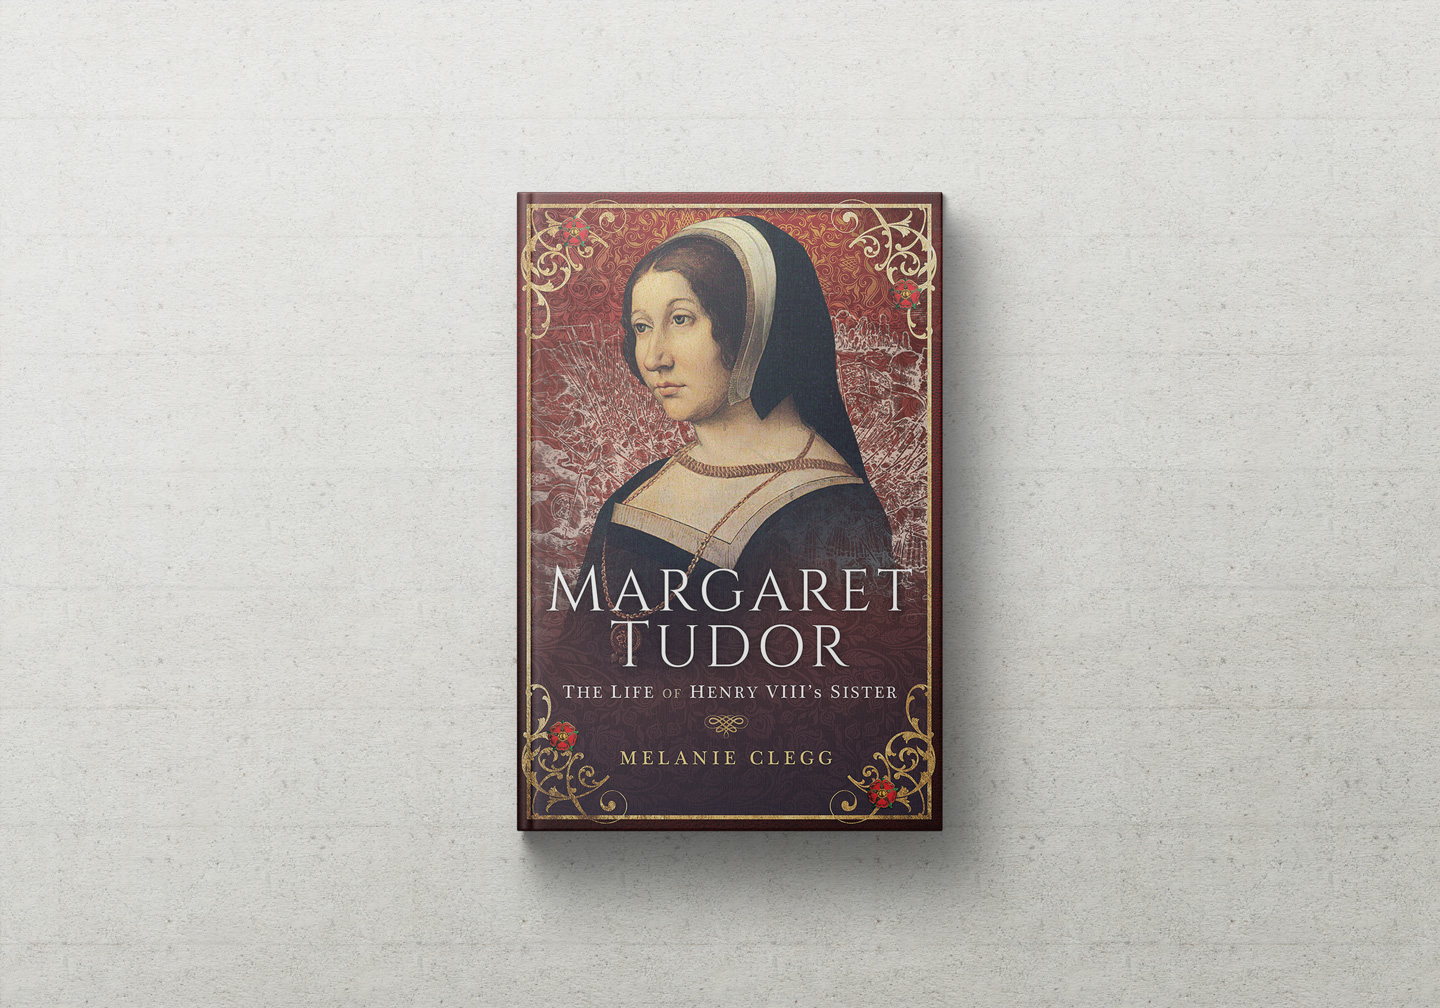 Margaret Tudor: The Life of Henry VIII's Sister book cover